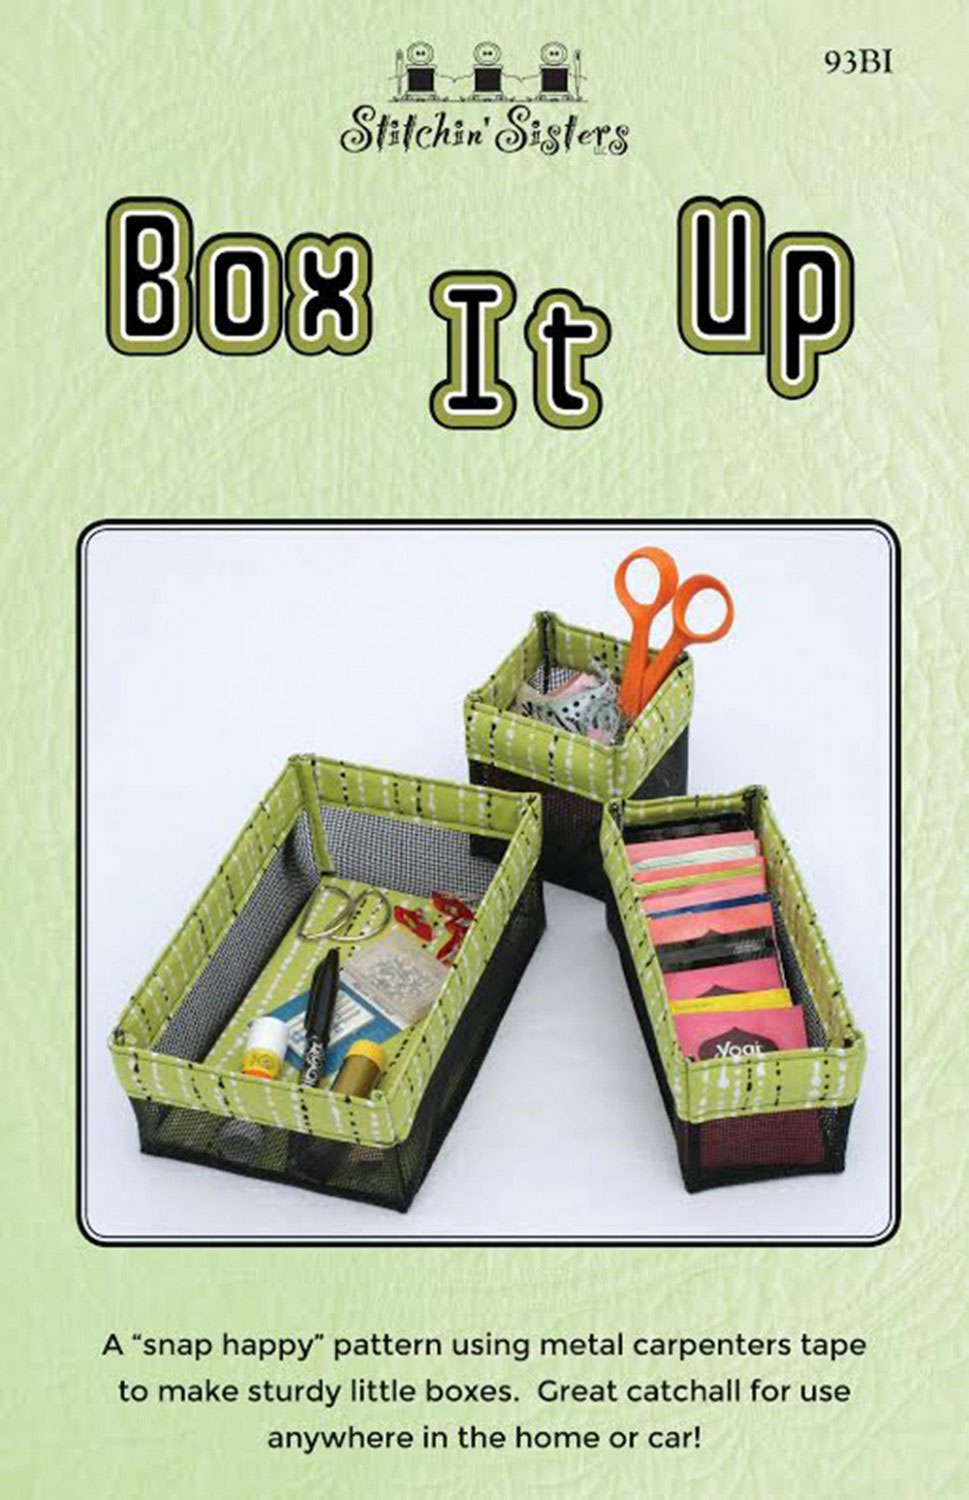 box-it-up-sewing-pattern-Stitchin-Sisters-front